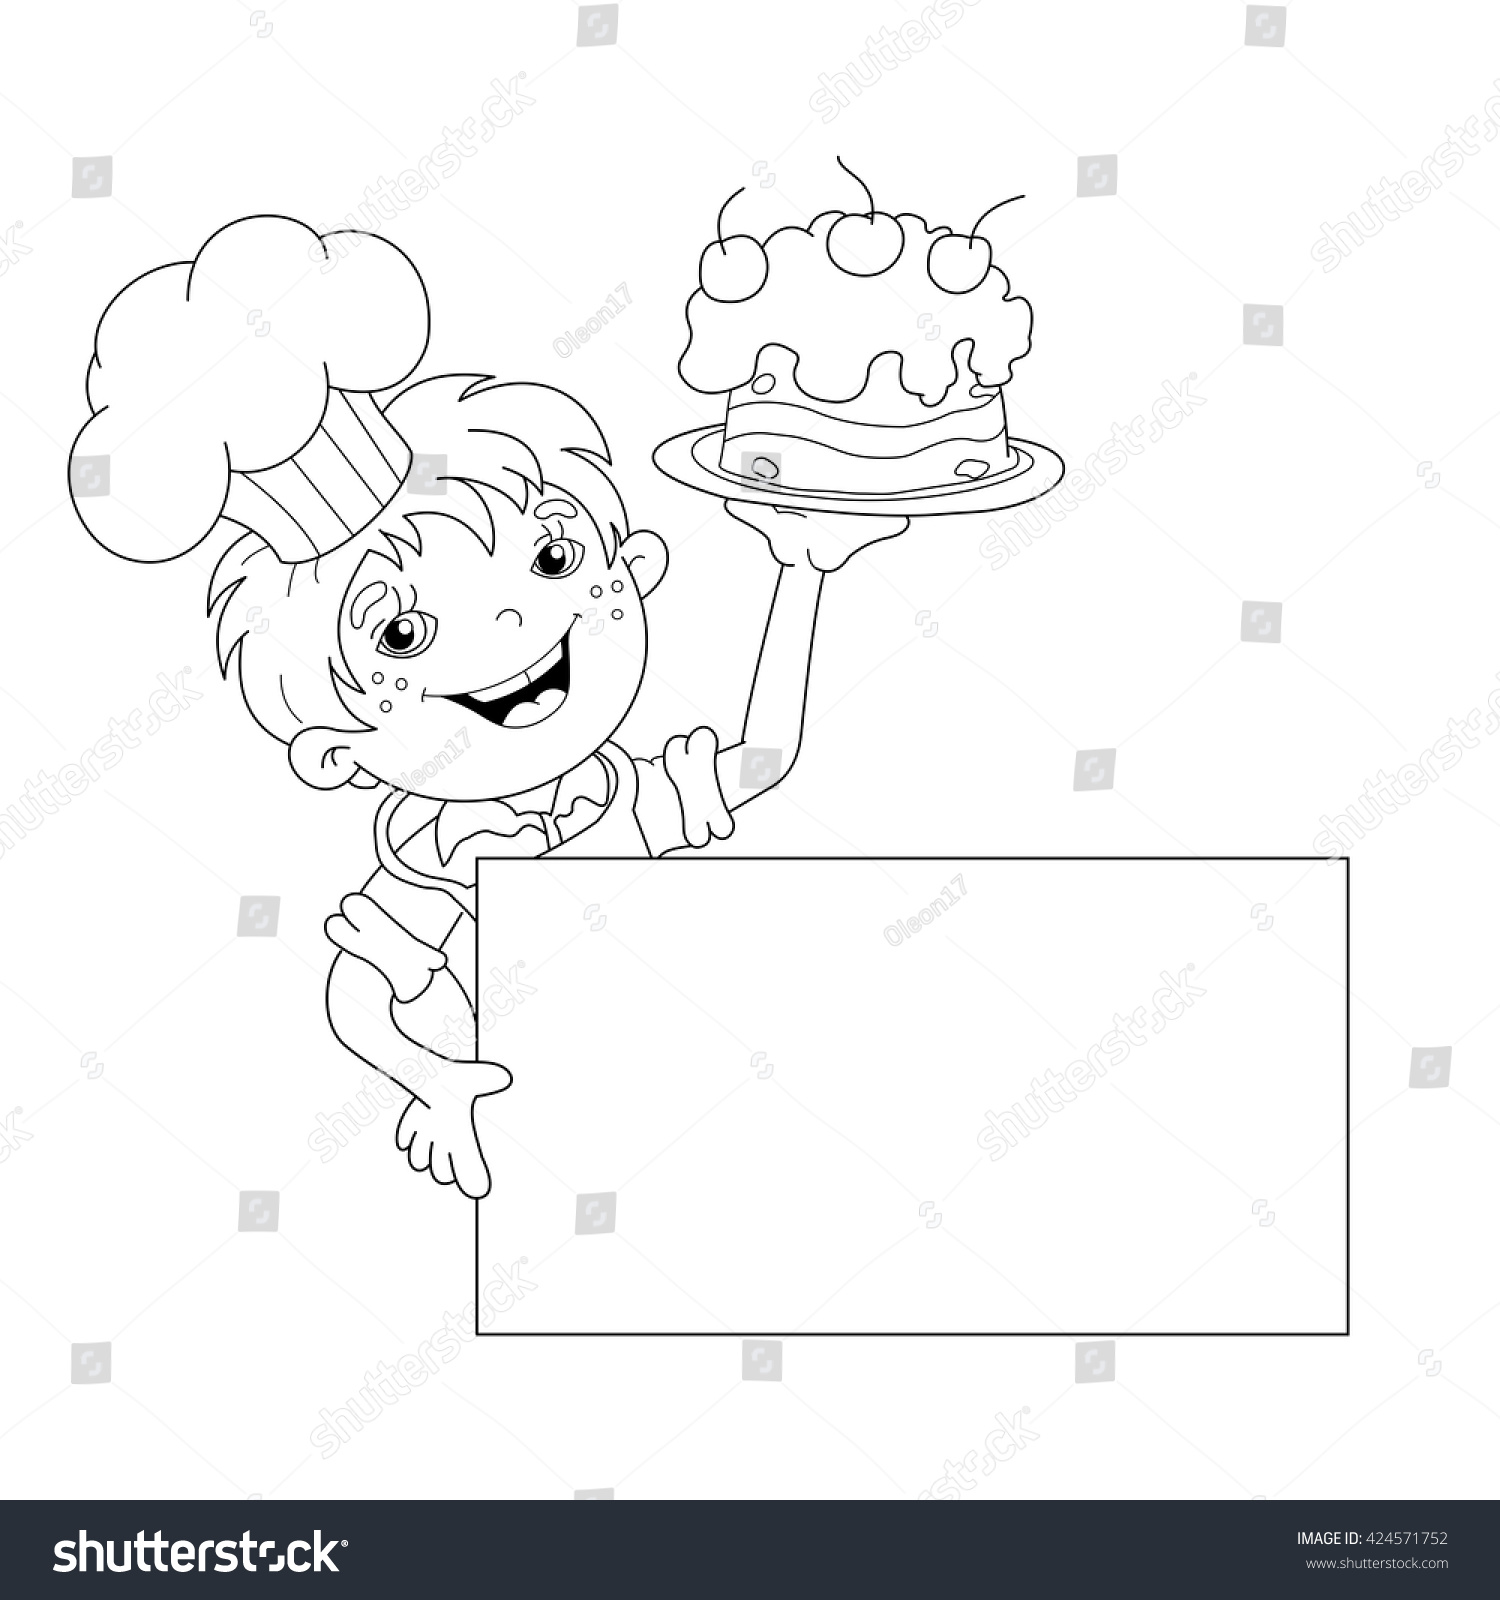 Coloring Page Outline Of Cartoon Boy Chef With Cake Template For Menu Book